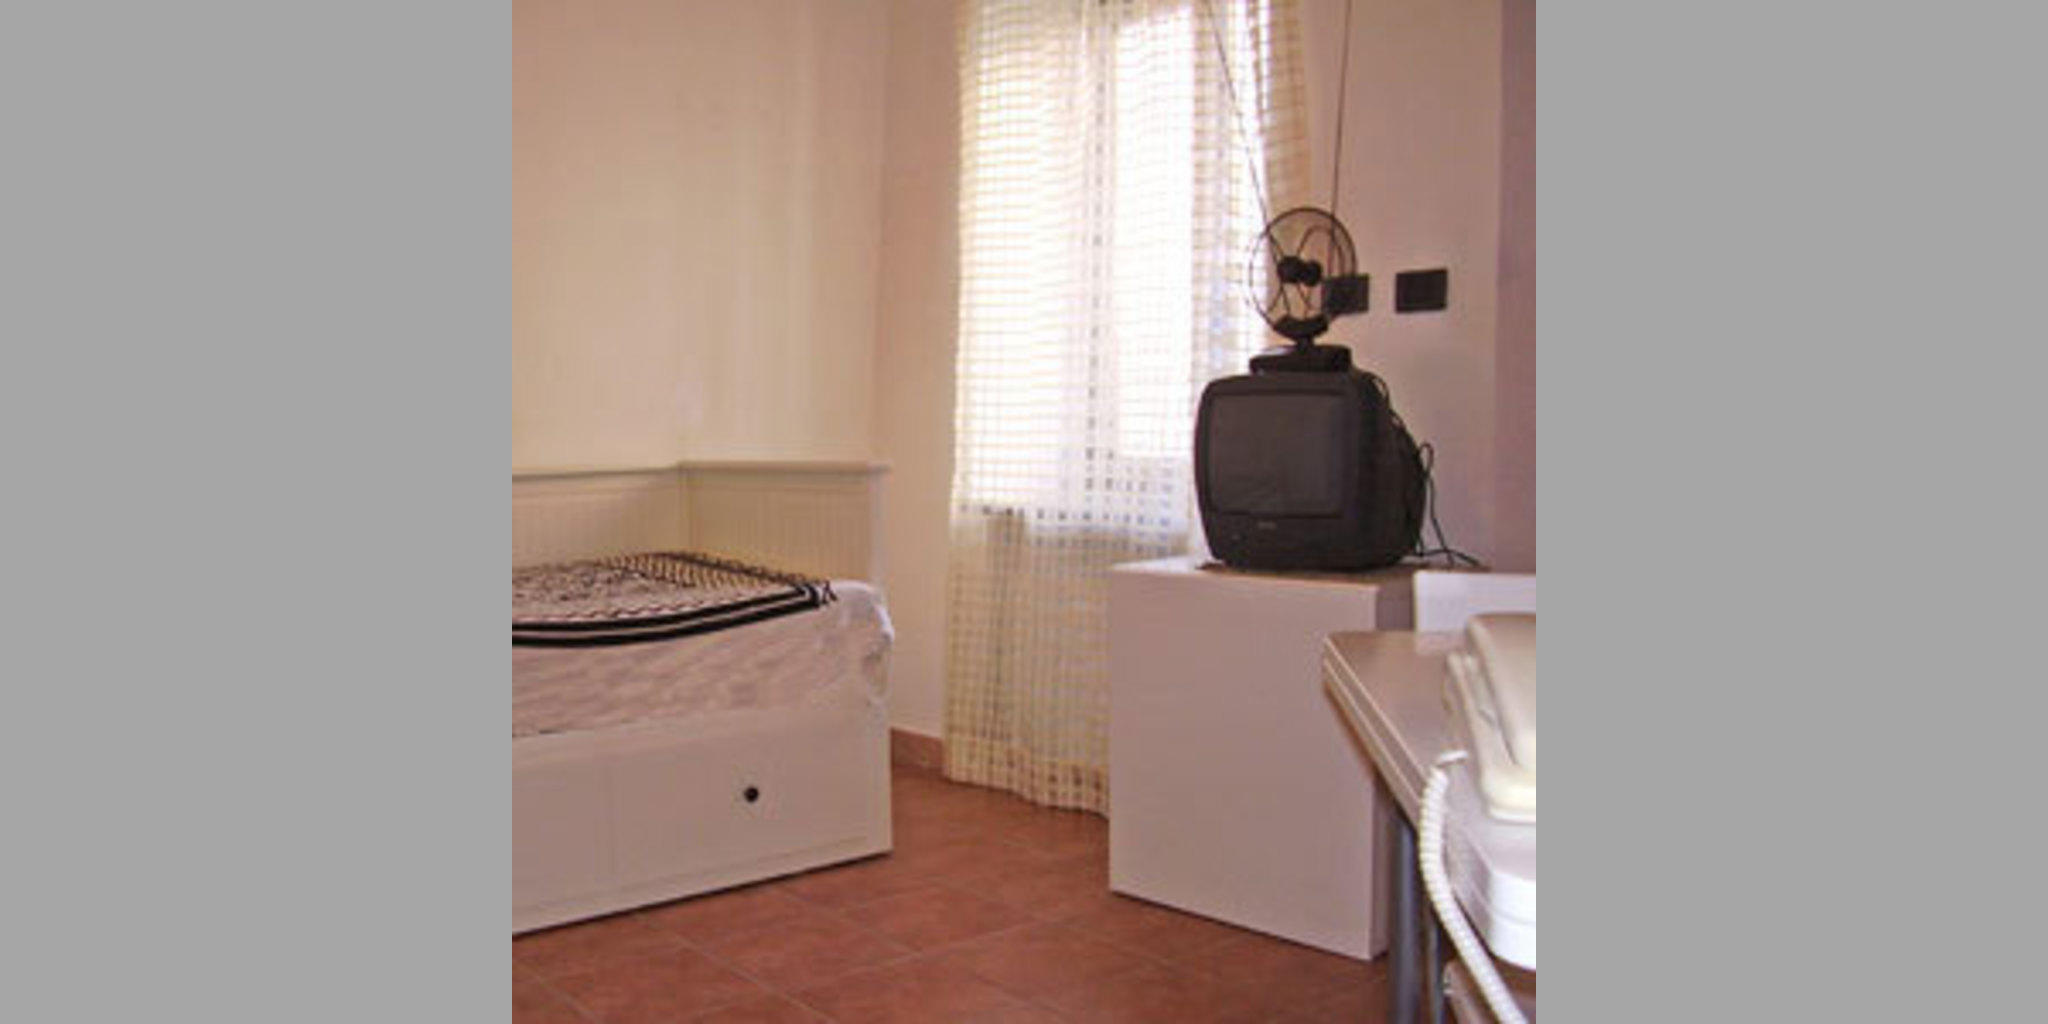 Bed & Breakfast San Maurizio Canavese - San Maurizio Canavese